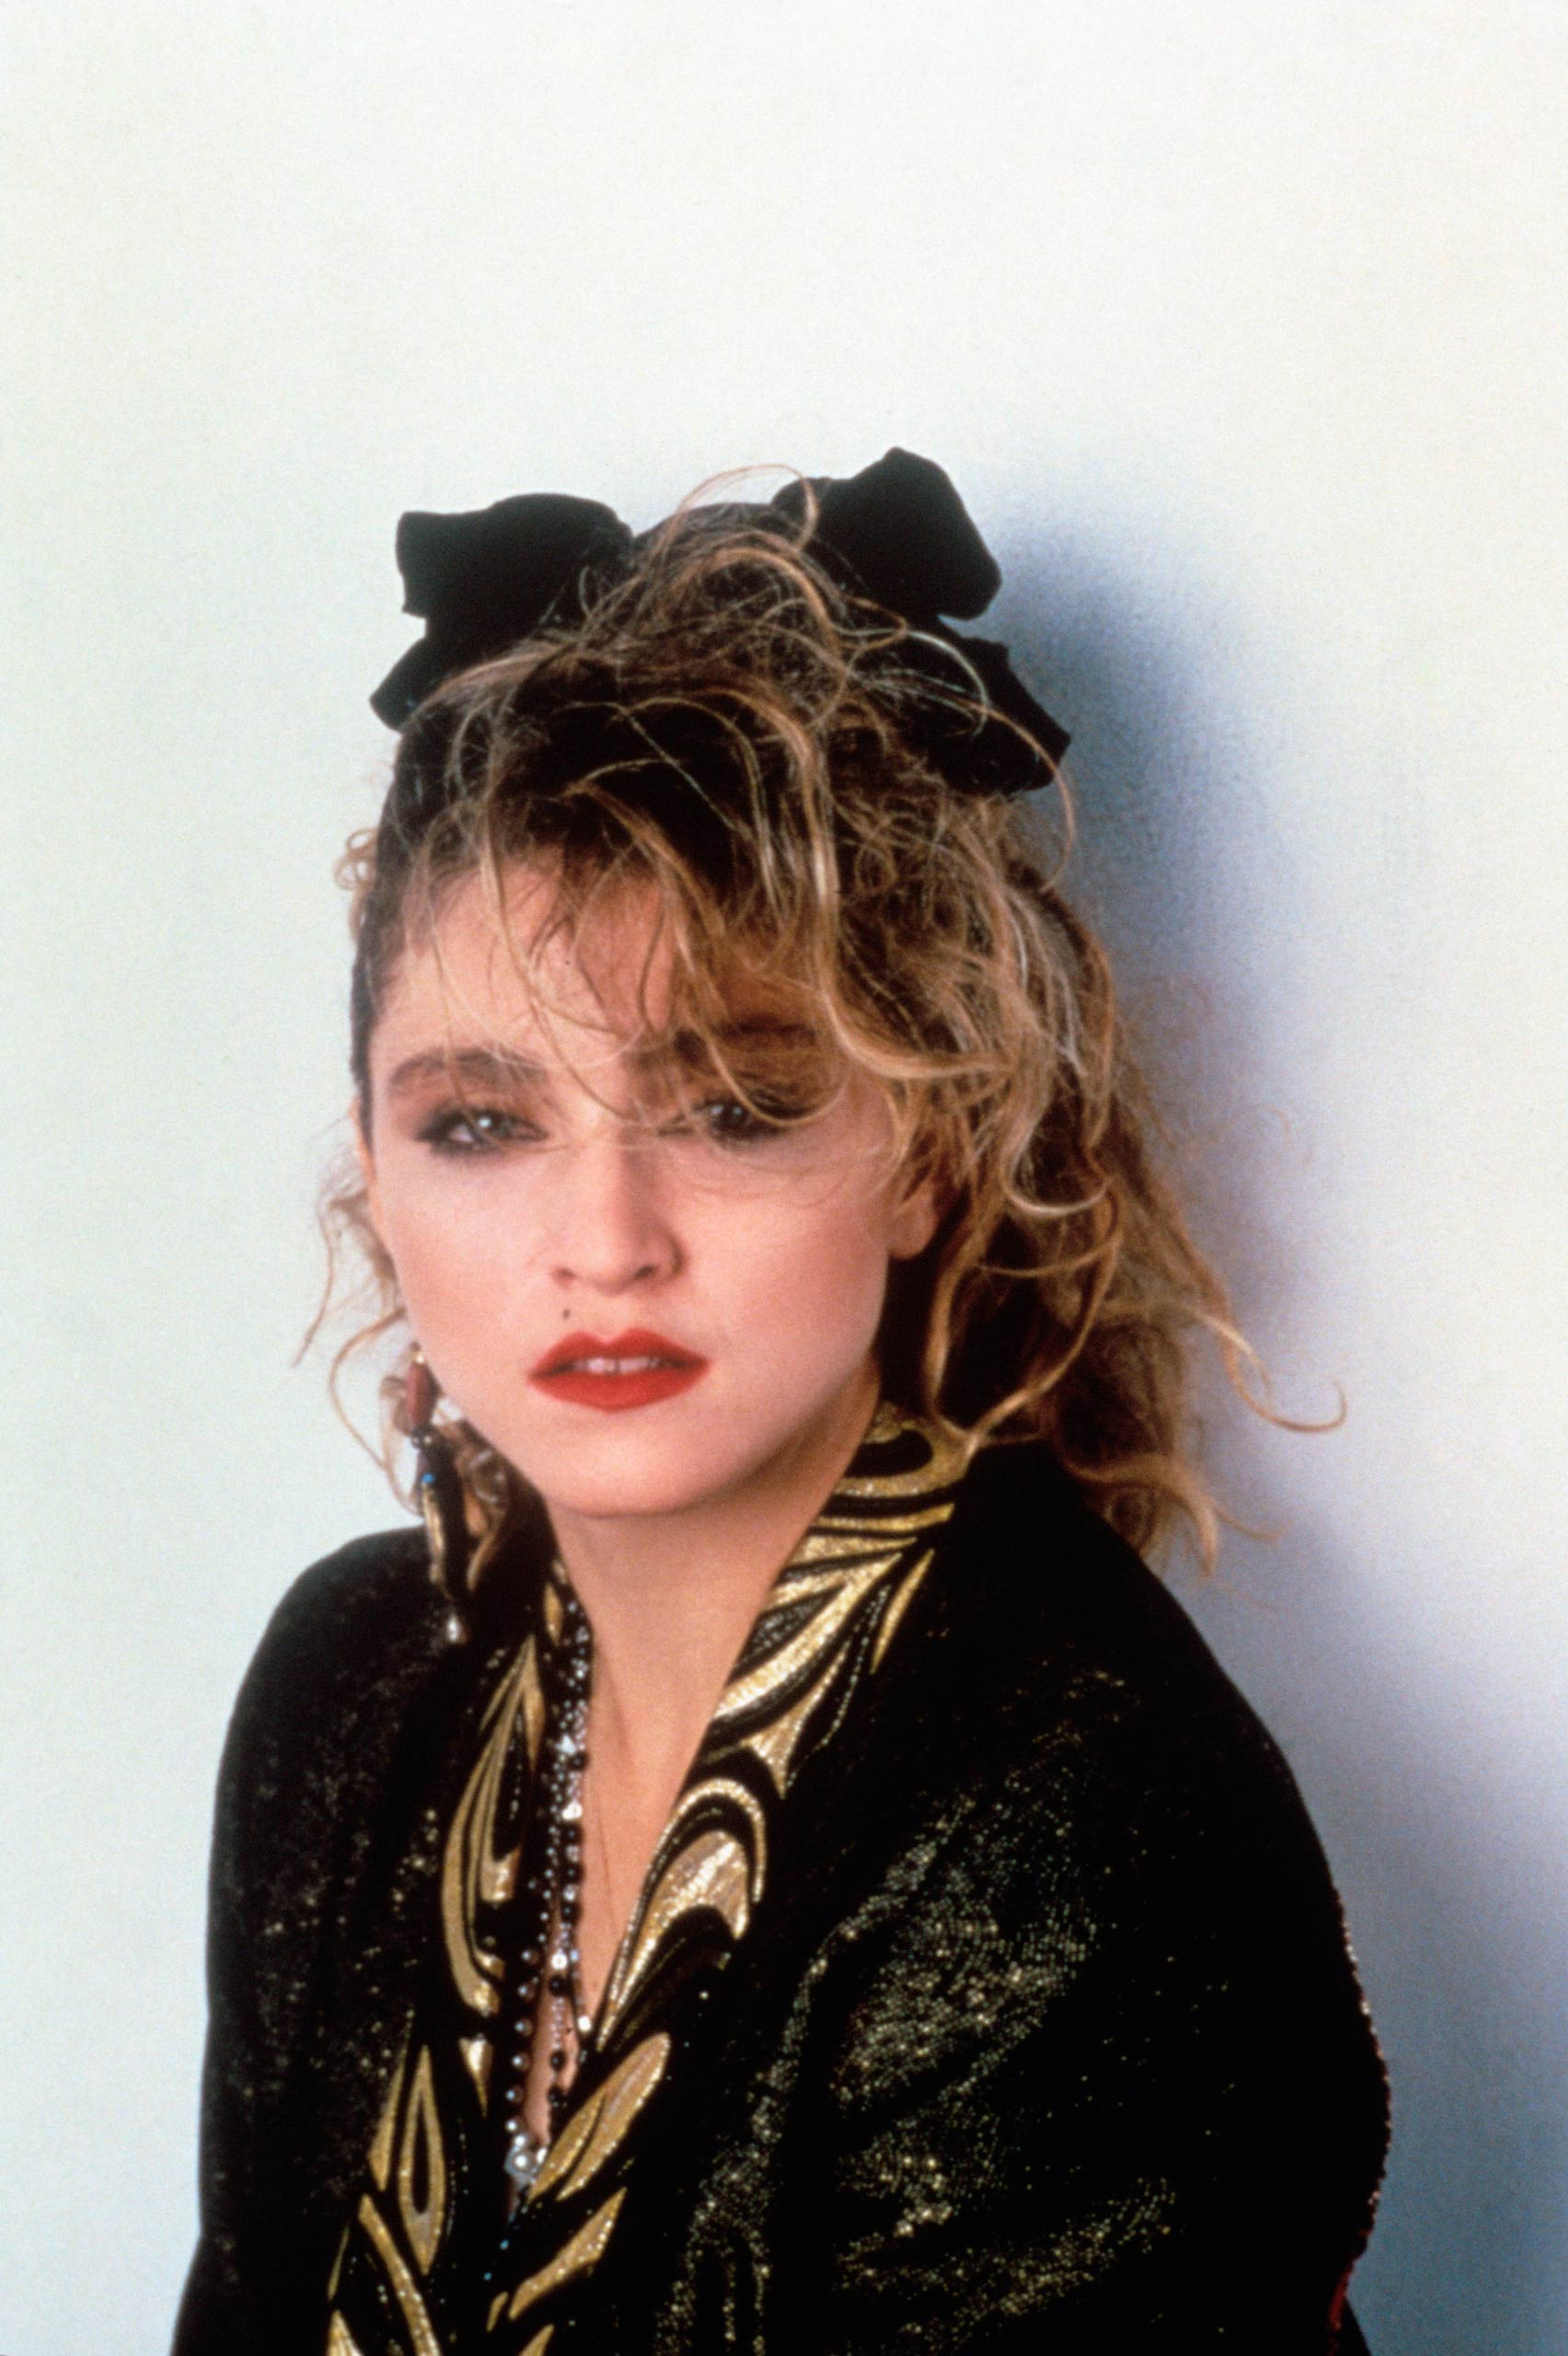 Madonna poses on the set of <i>Desperately Seeking Susan</i> in 1985.